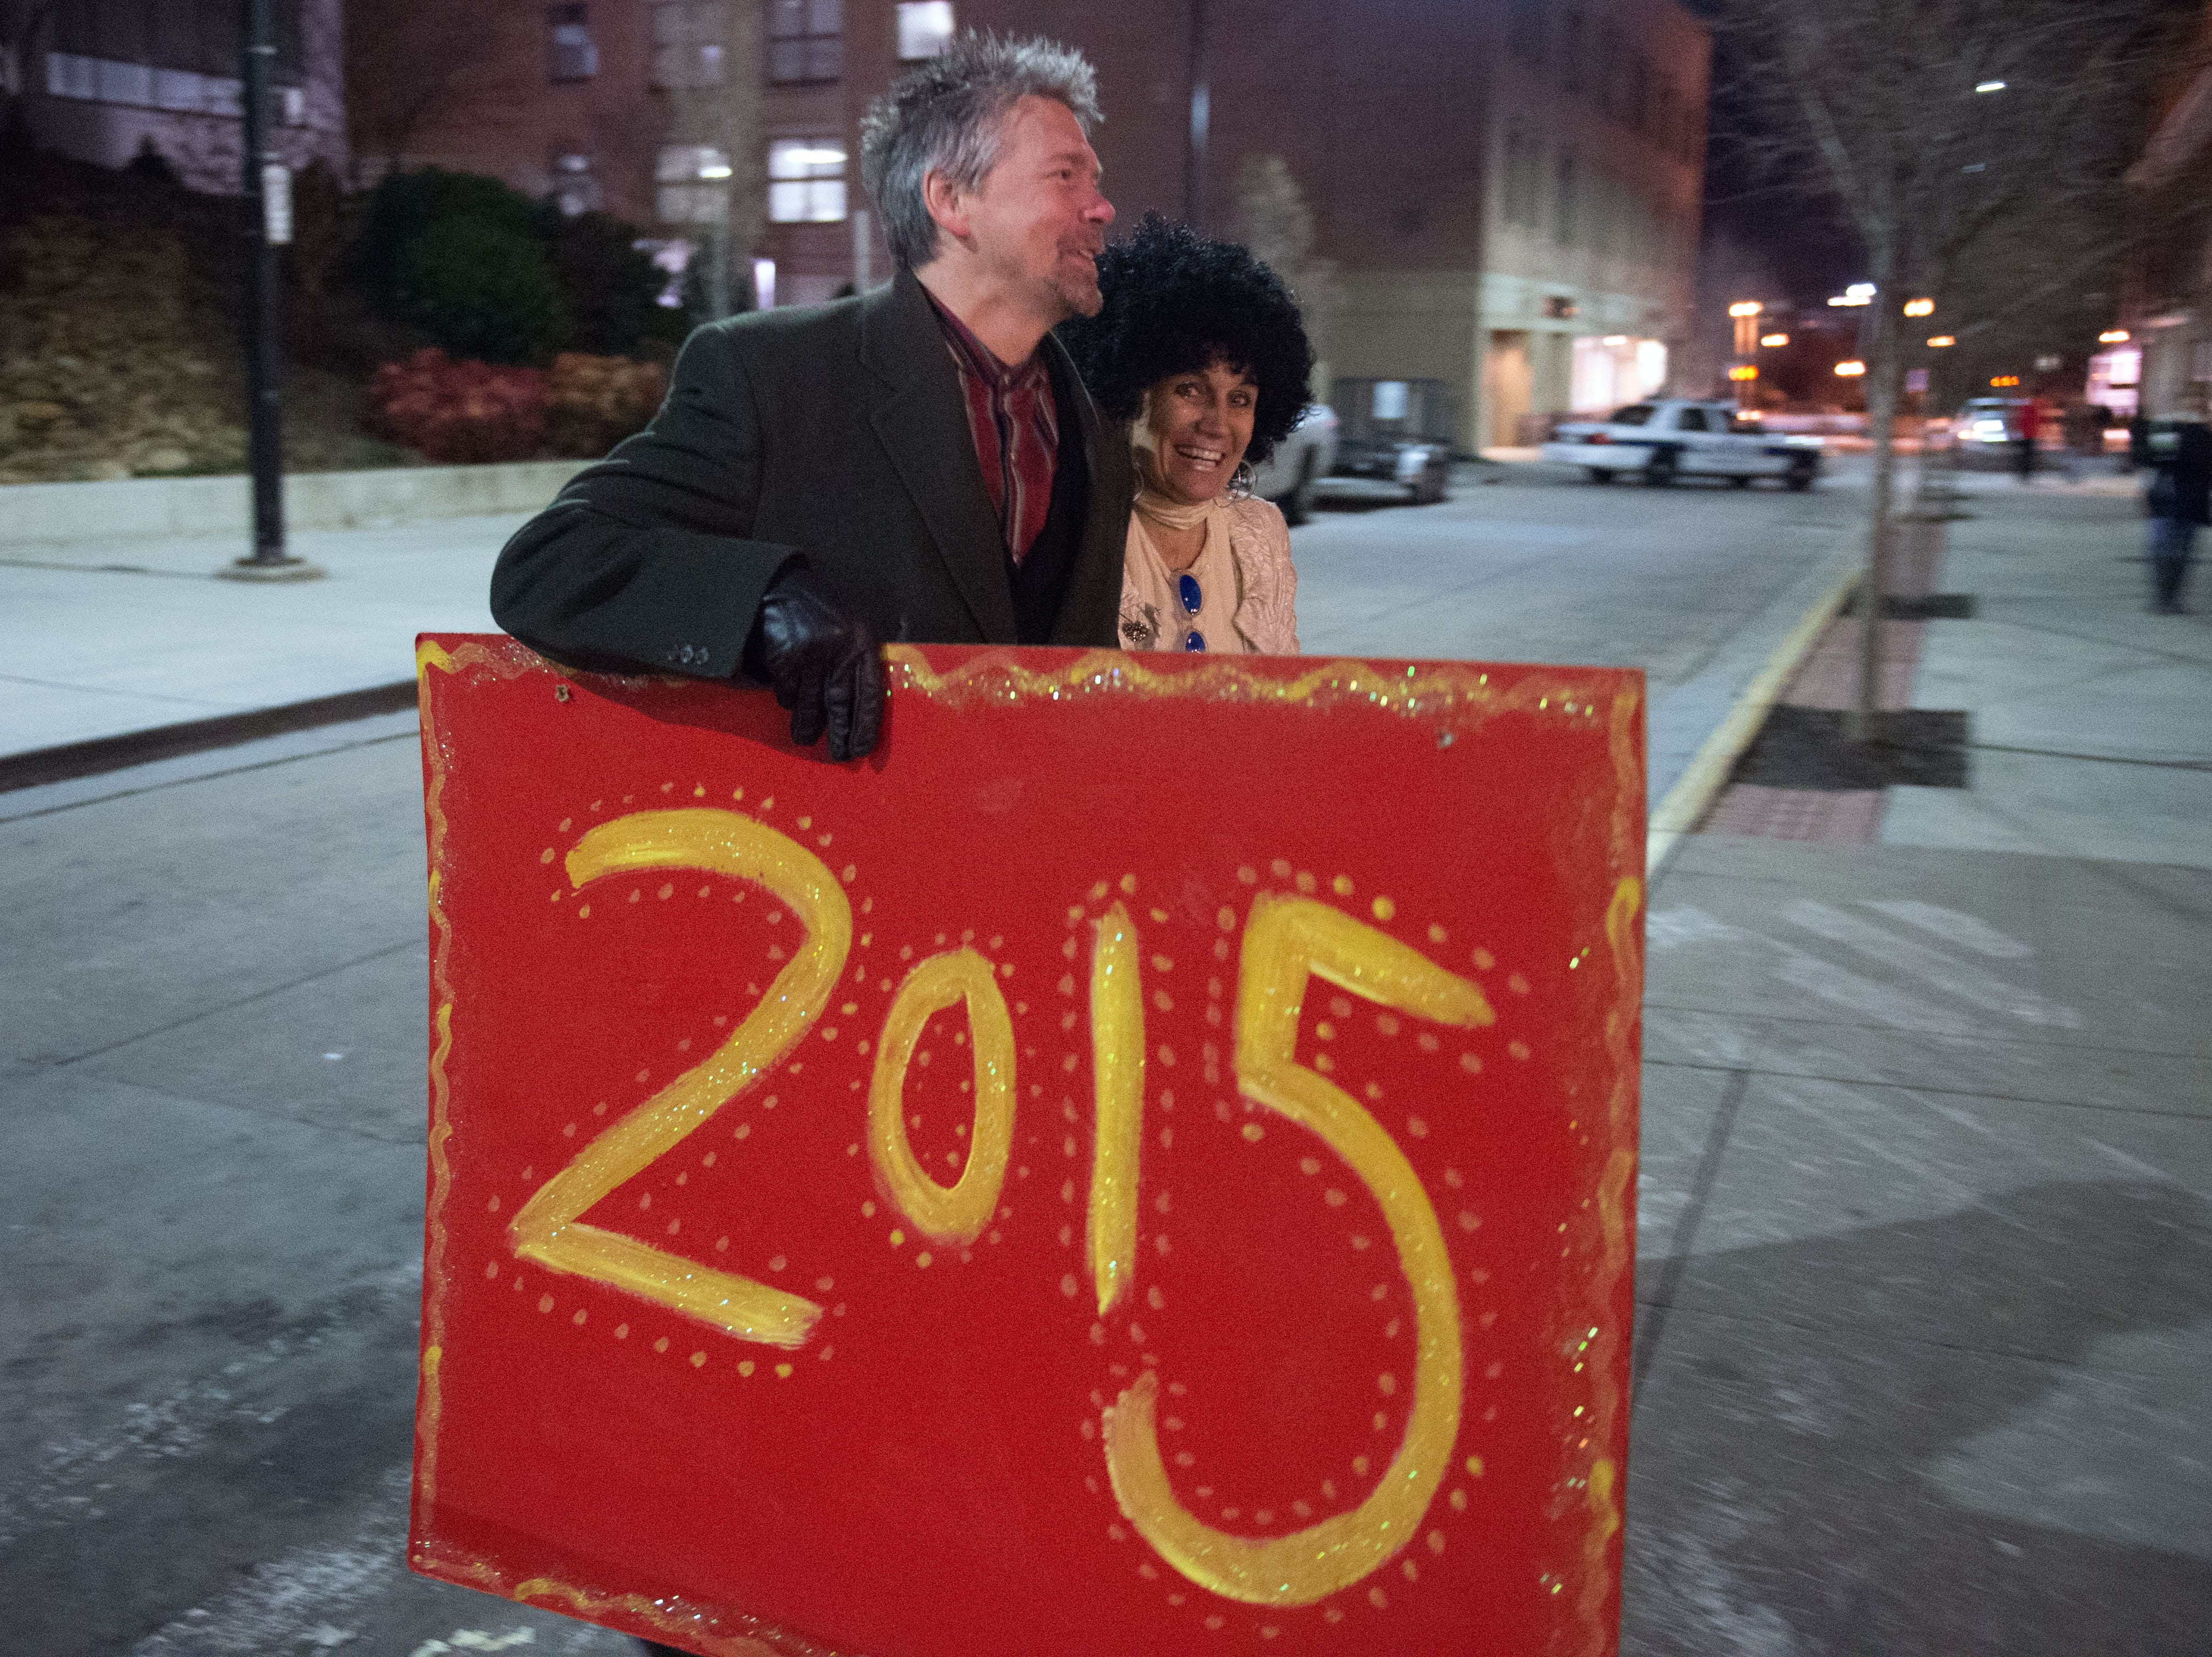 Scott and Bernadette West walk through Market Square in preparation for their New Year's Eve celebration on Wednesday, December 31, 2014.